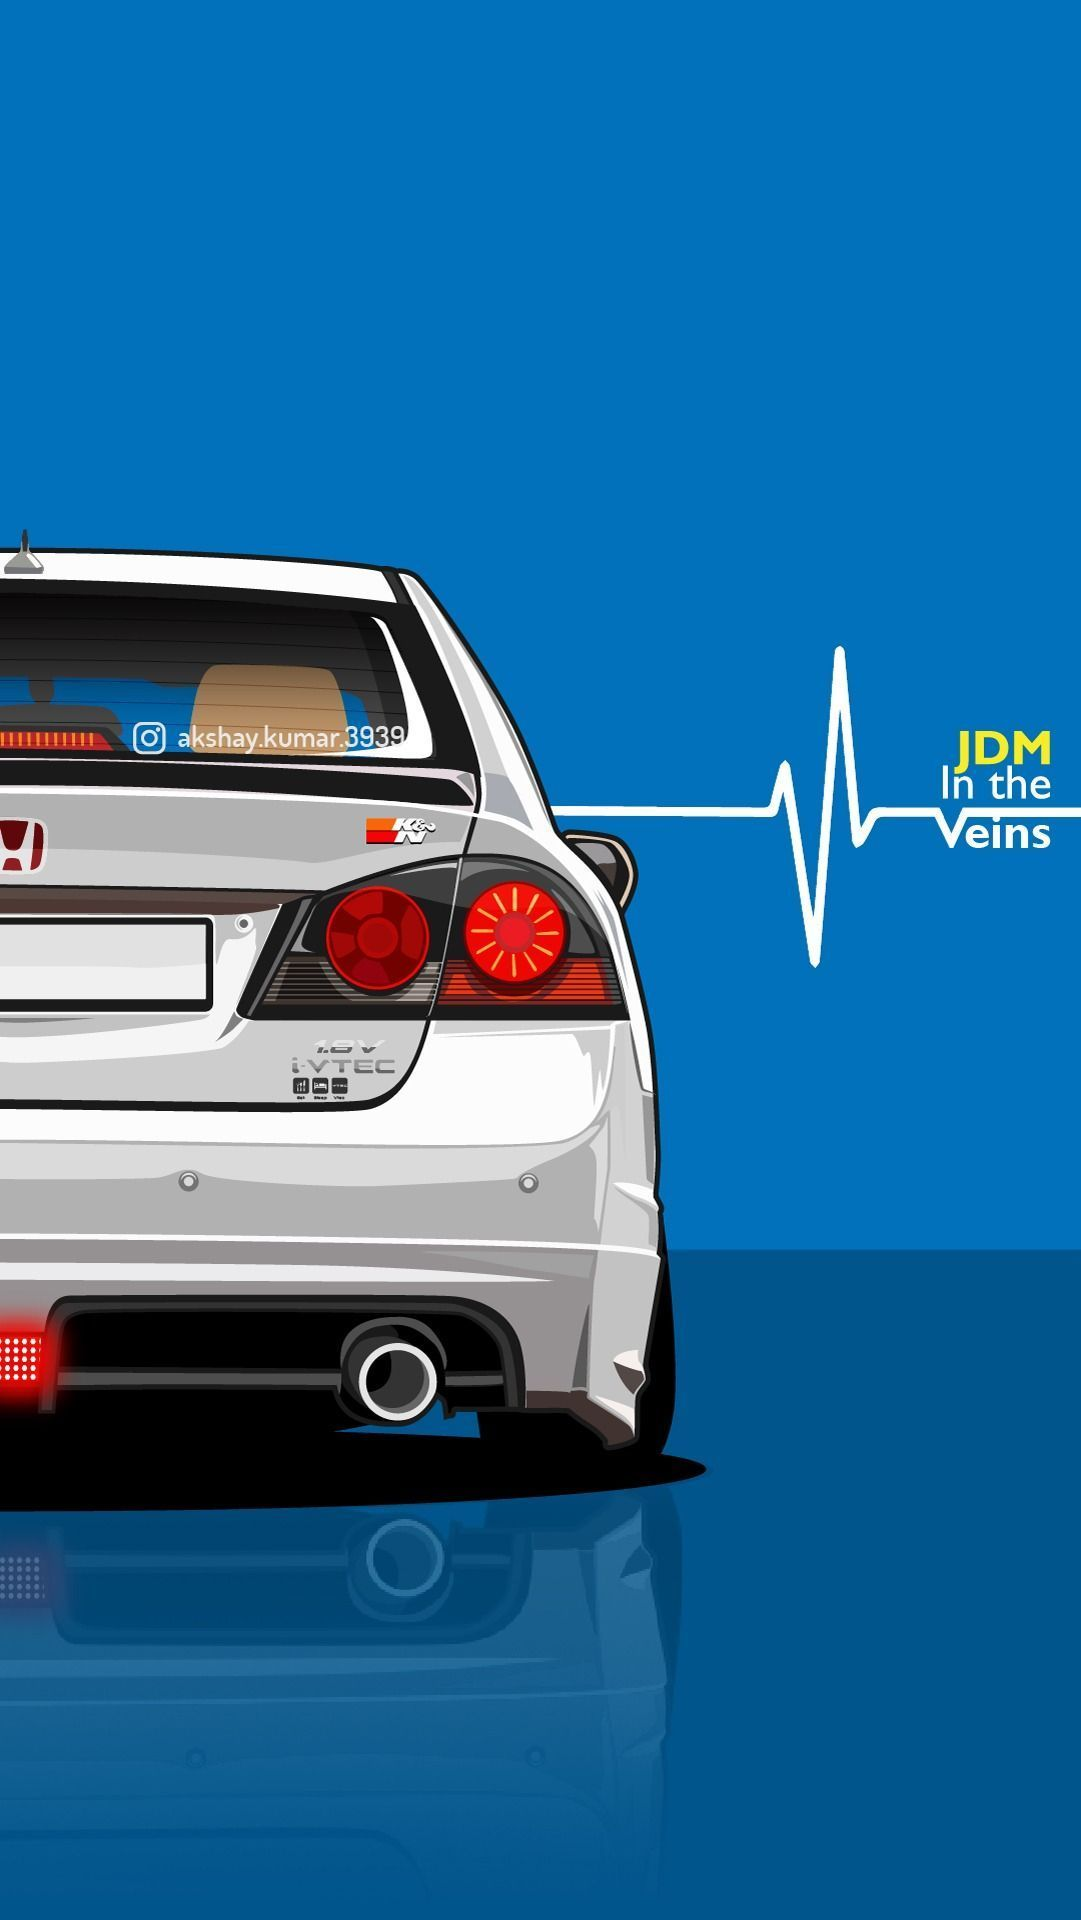 Compare models, find local dealers/sellers,calculate payments, value your car, sell/trade in your car & Honda Civic Wallpaper Indian Cars Wallpaper Civic Fd2 Jdm Wallpaper Phone Wallpapers Cars Civic F Slammed Cars Honda Jdm Wallpaper Honda Civic Car